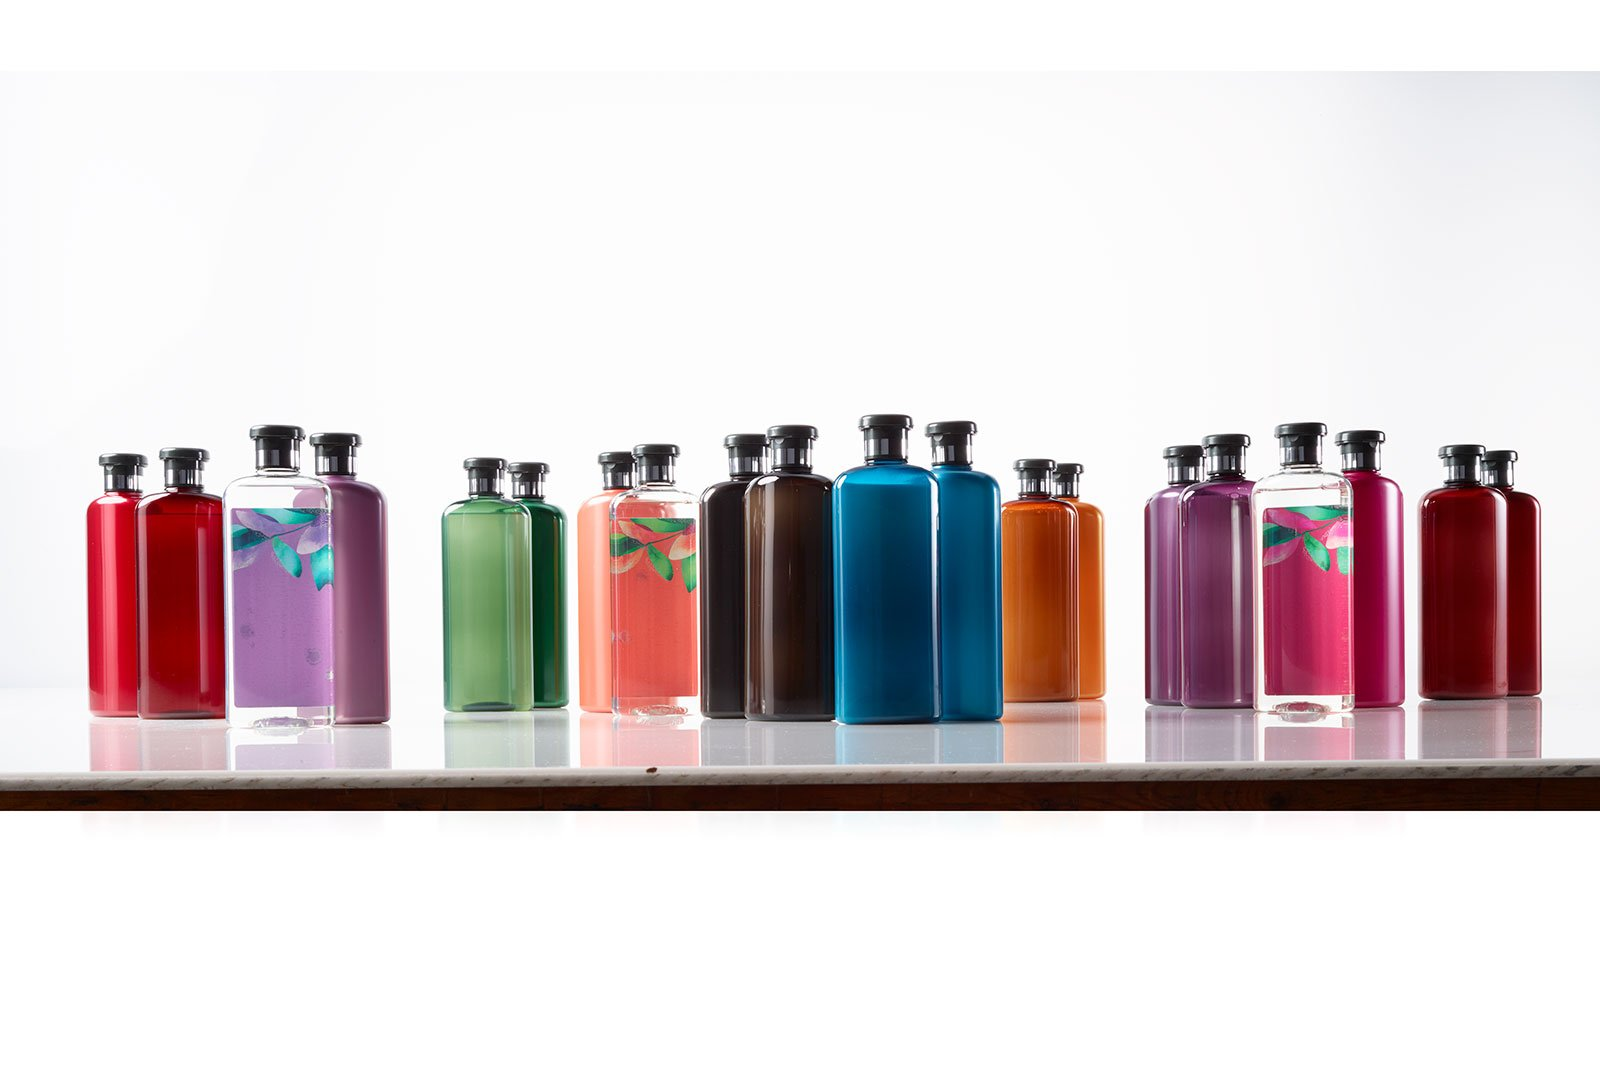 Shampoo bottles before retouching